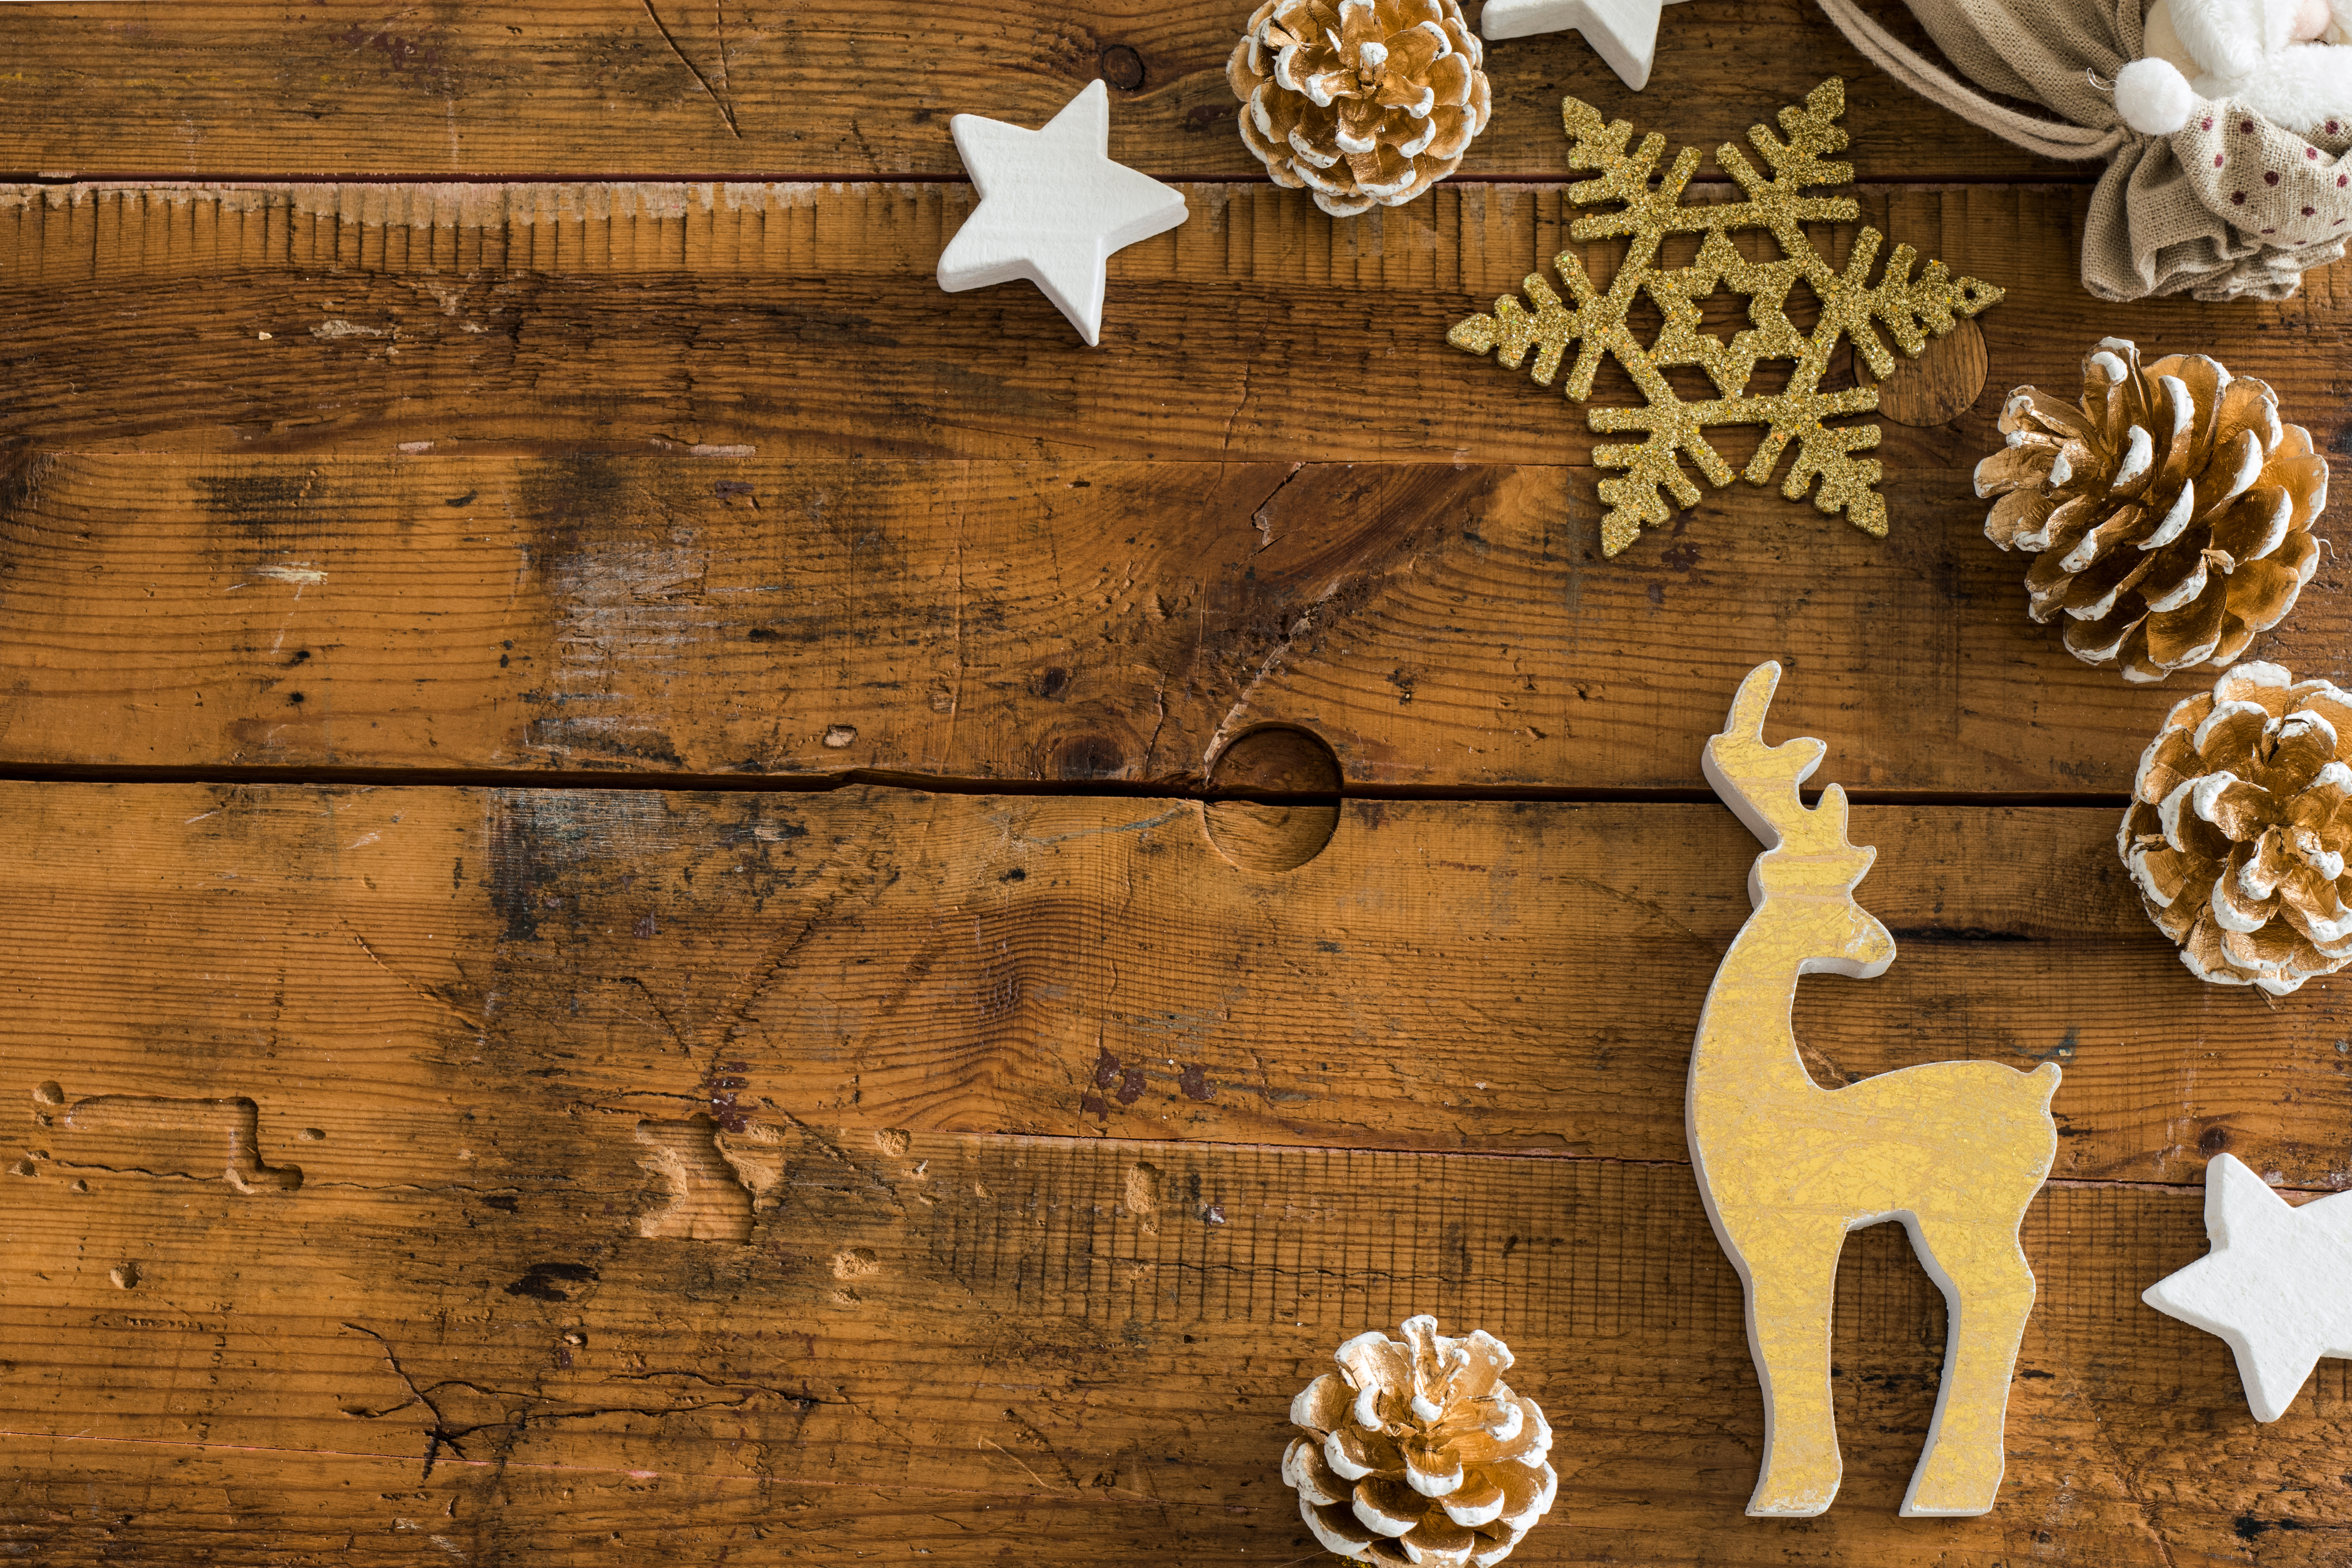 14 Free Christmas Flat Lay Photos for Your Blog